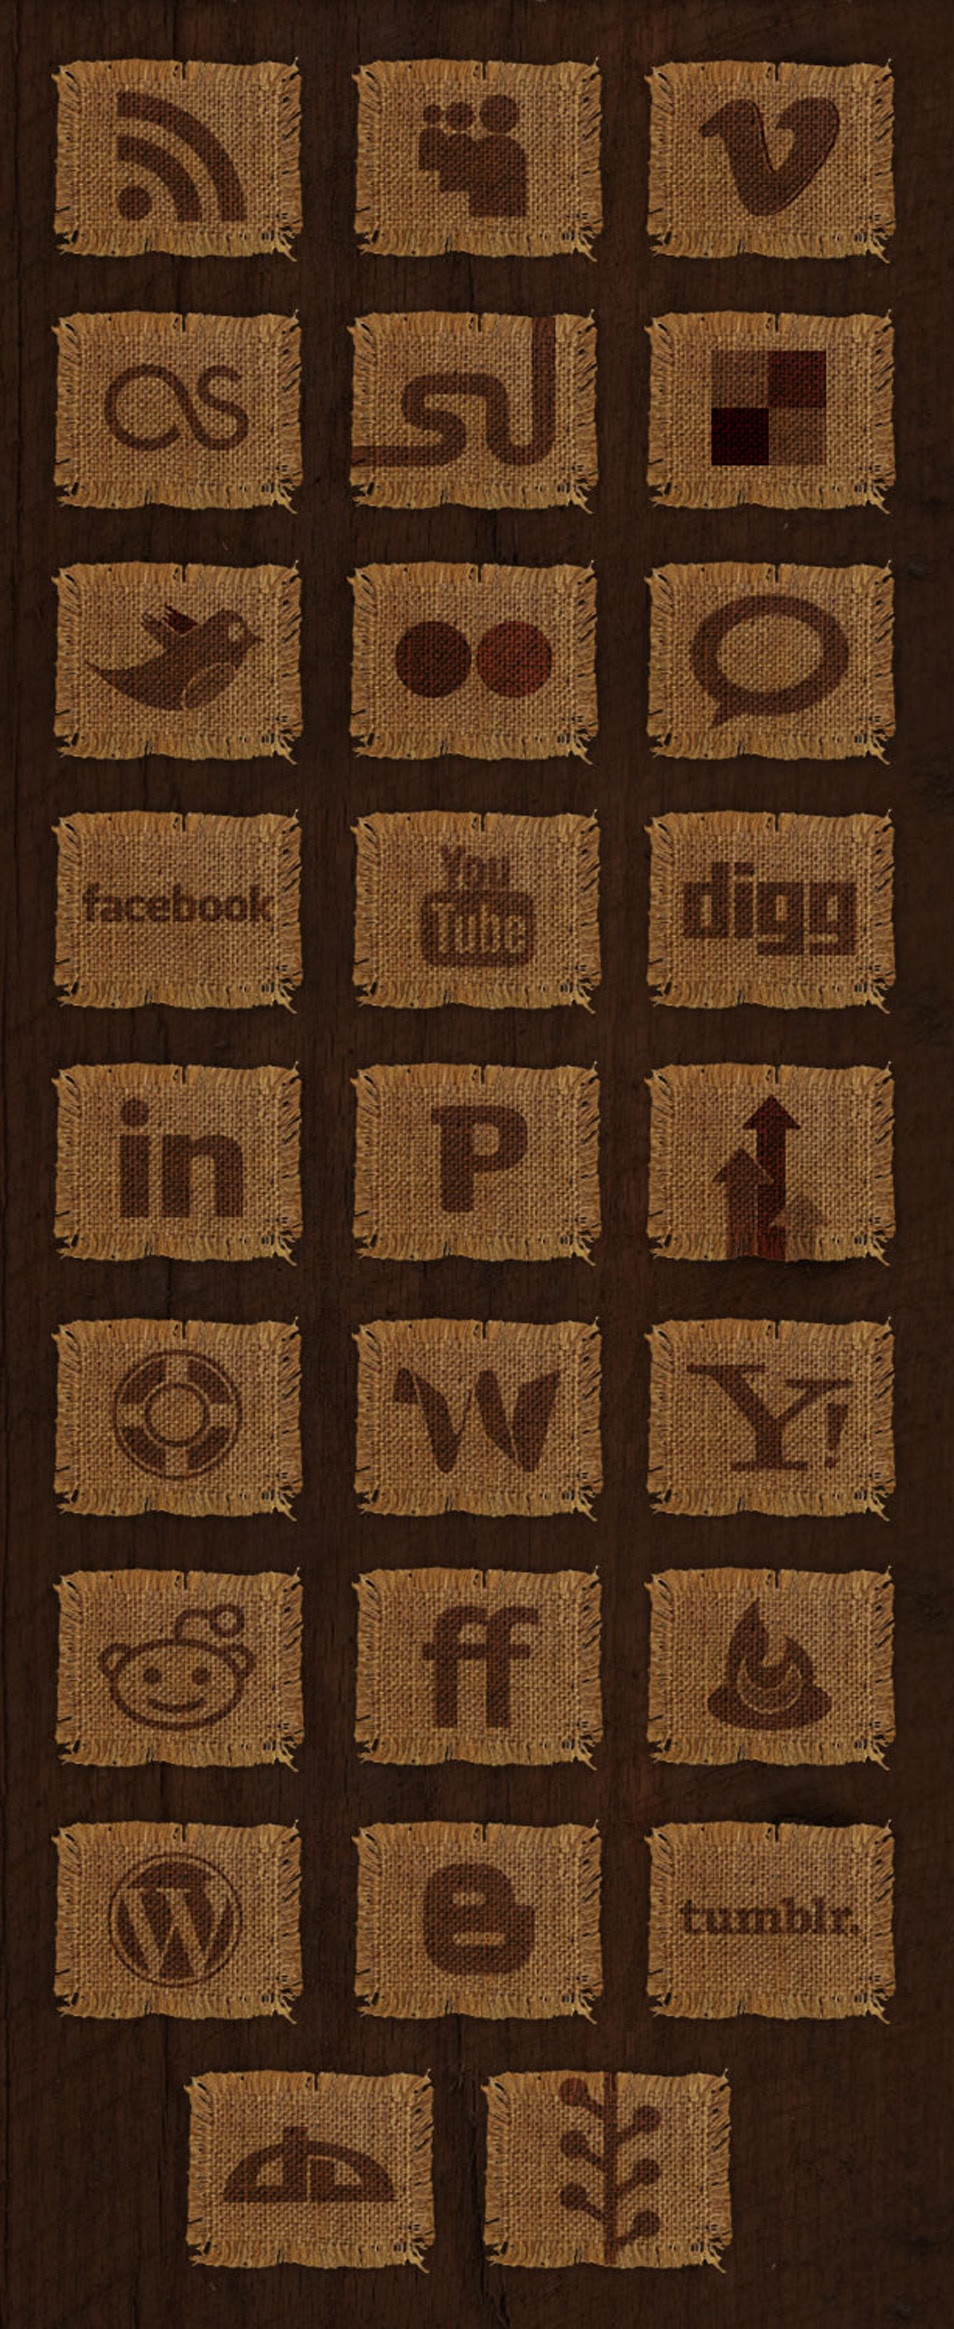 Woven Fabric Social Media Icon Set